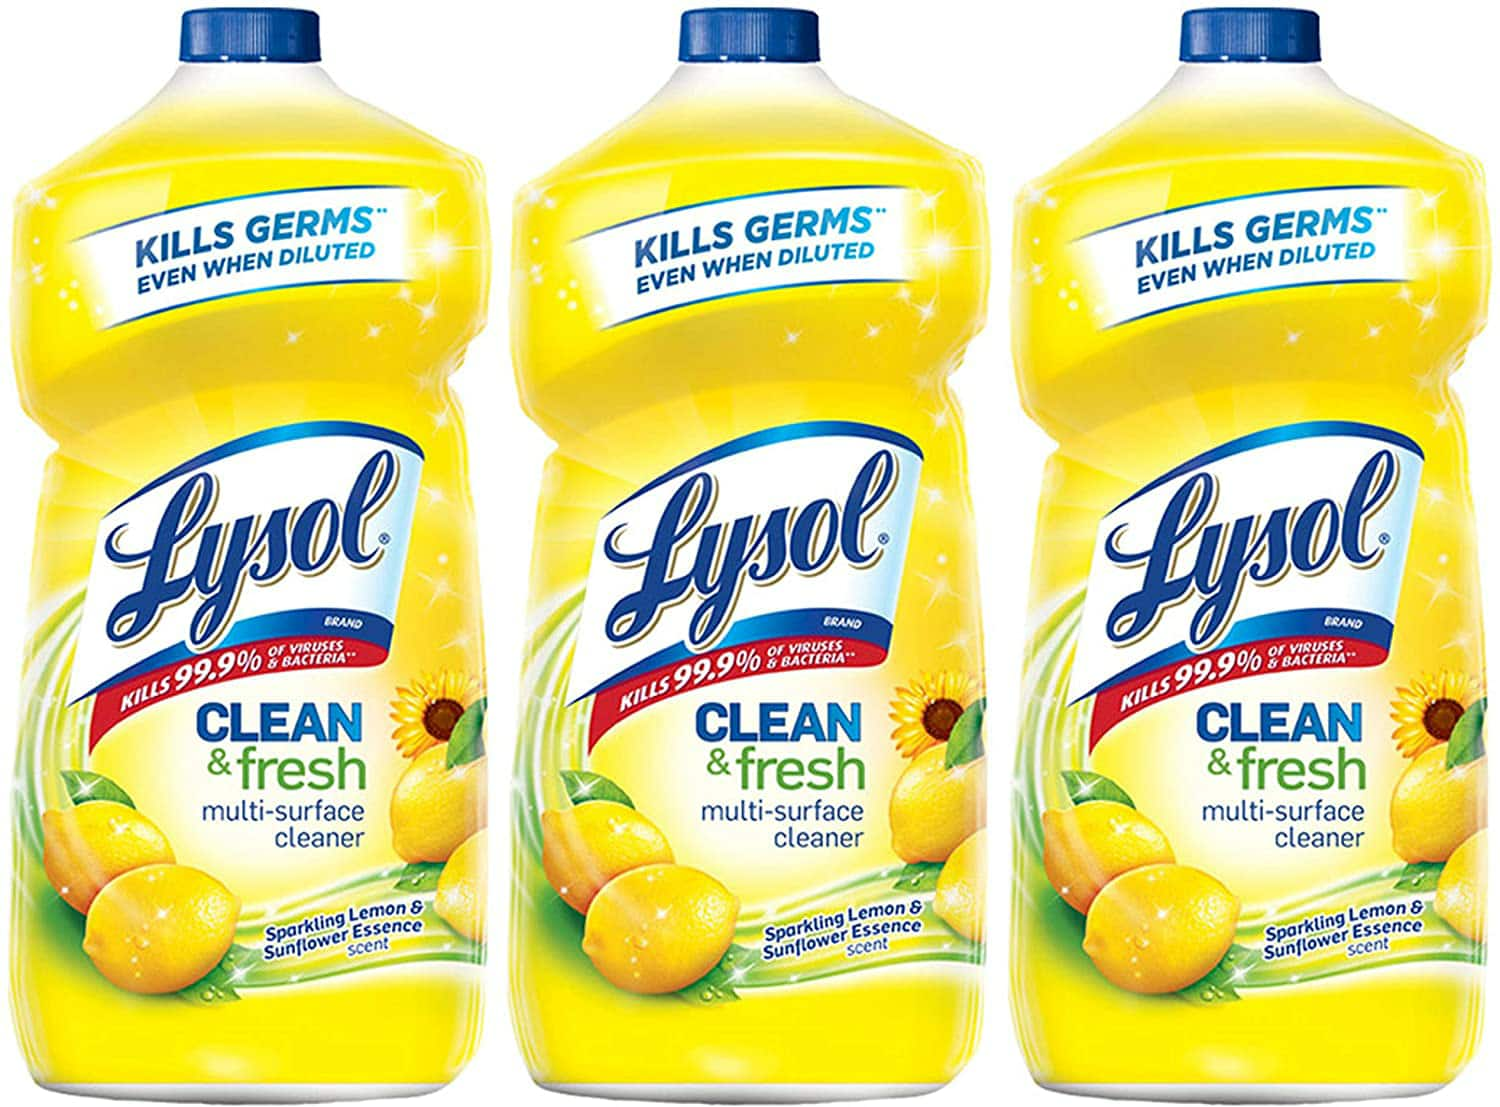 Lysol Clean and Fresh Multi-Surface Cleaner, Lemon and Sunflower, 40 Ounce (Pack of 3): $11.37